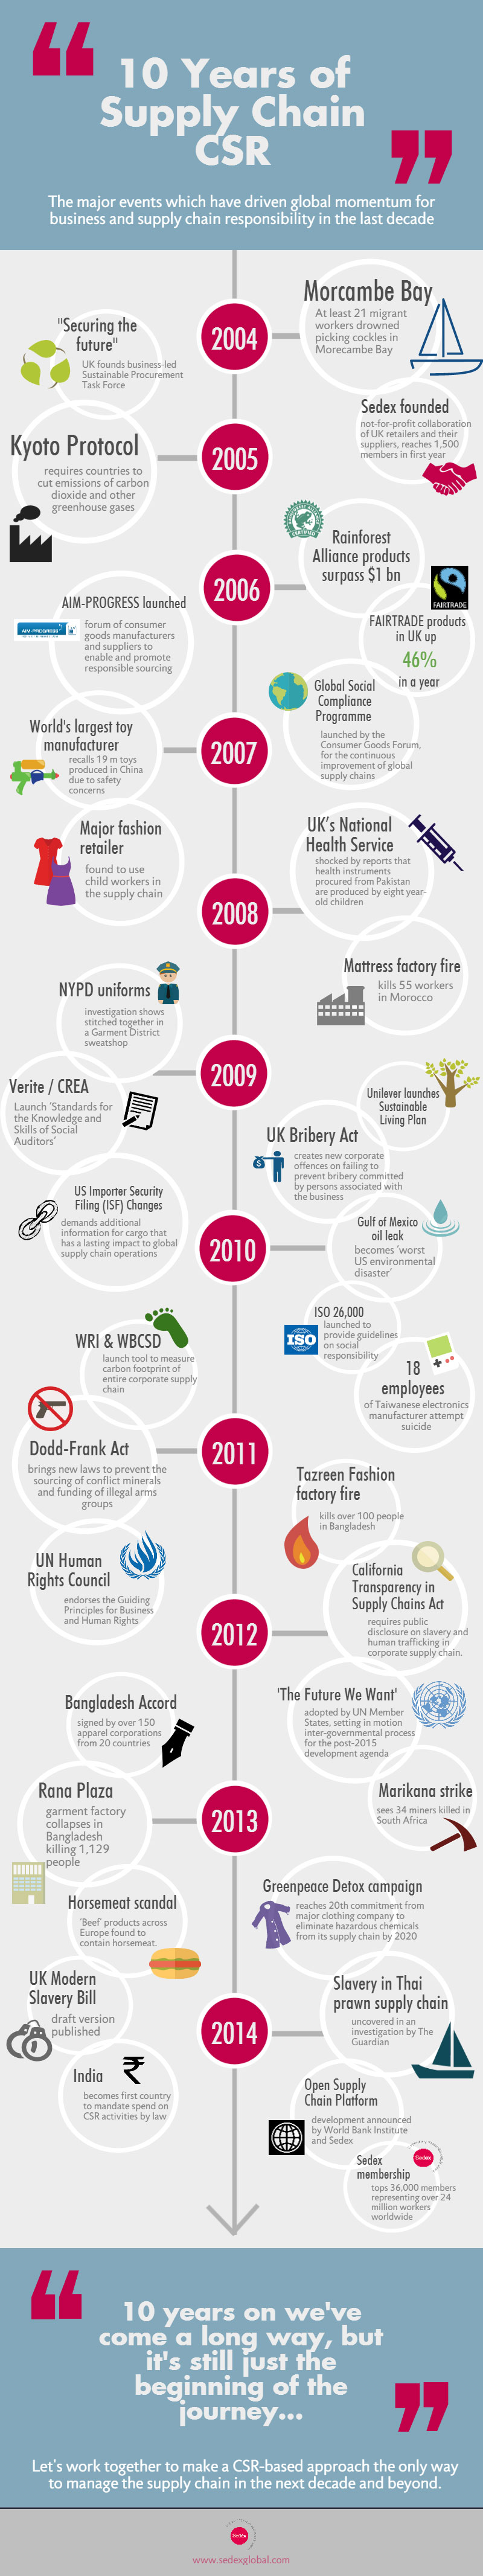 Infographic: 10 years of supply chain CSR